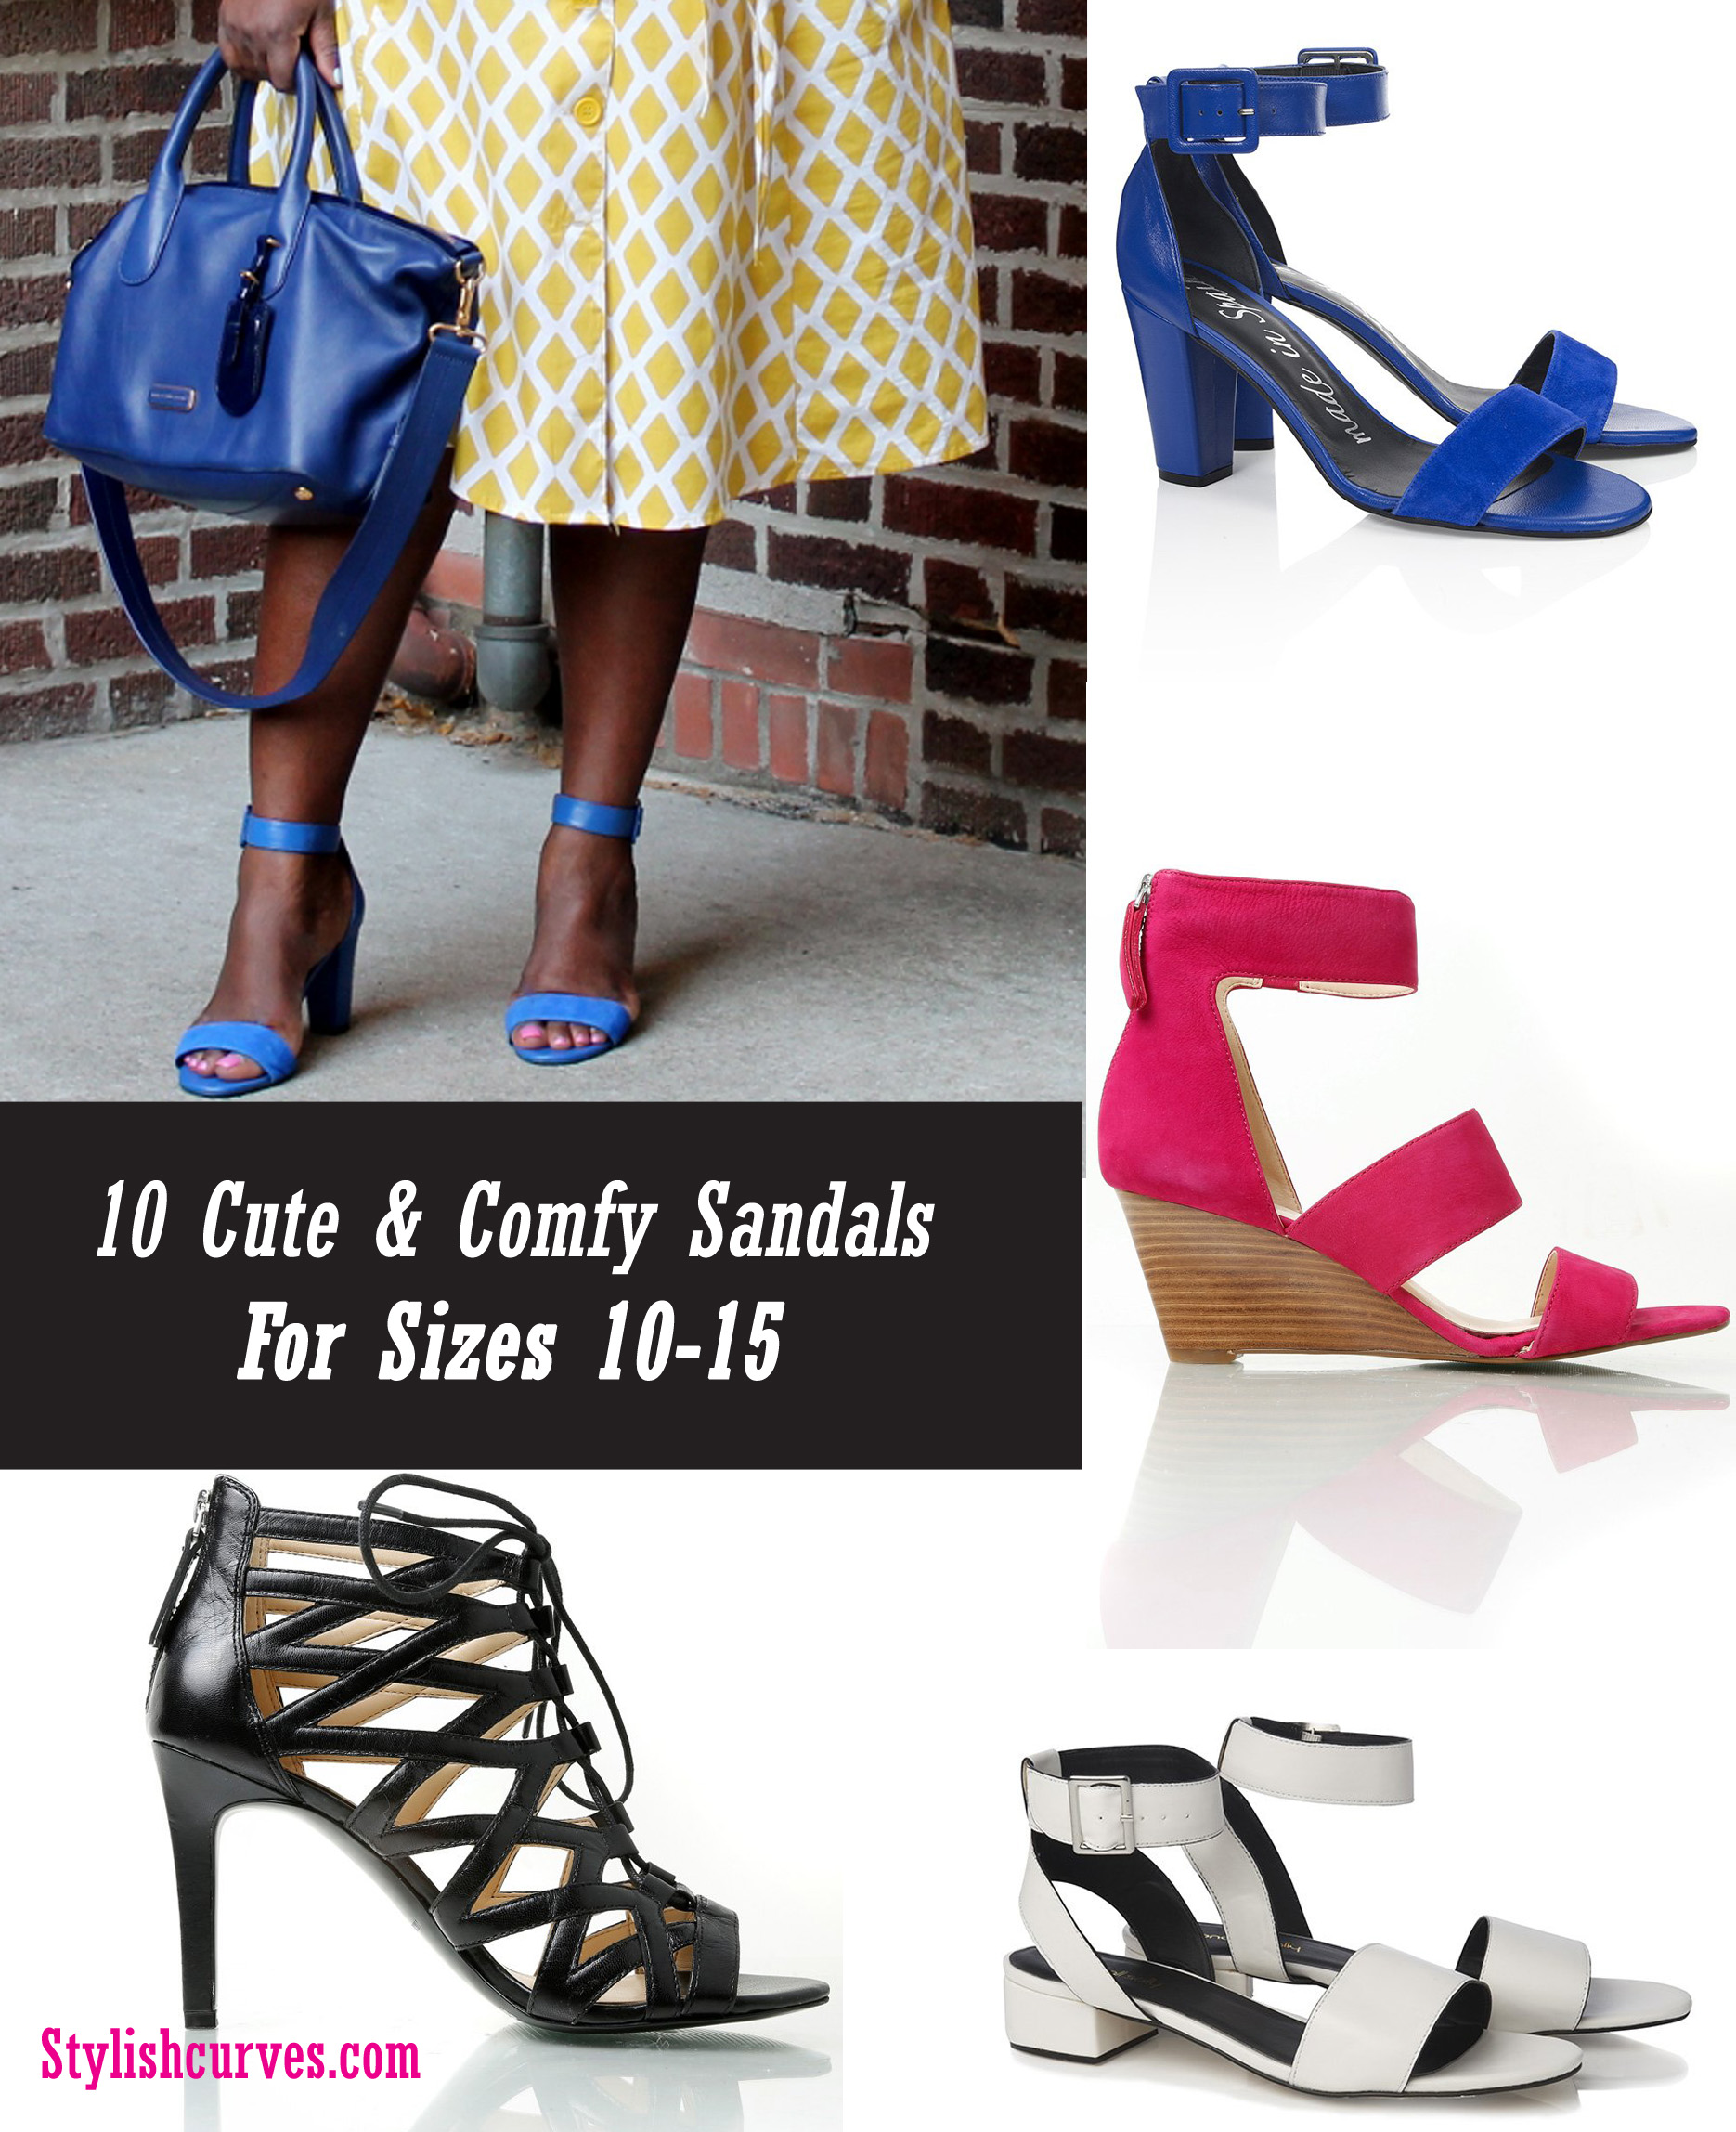 10 Cute And Comfy Sandals For Sizes 10-15